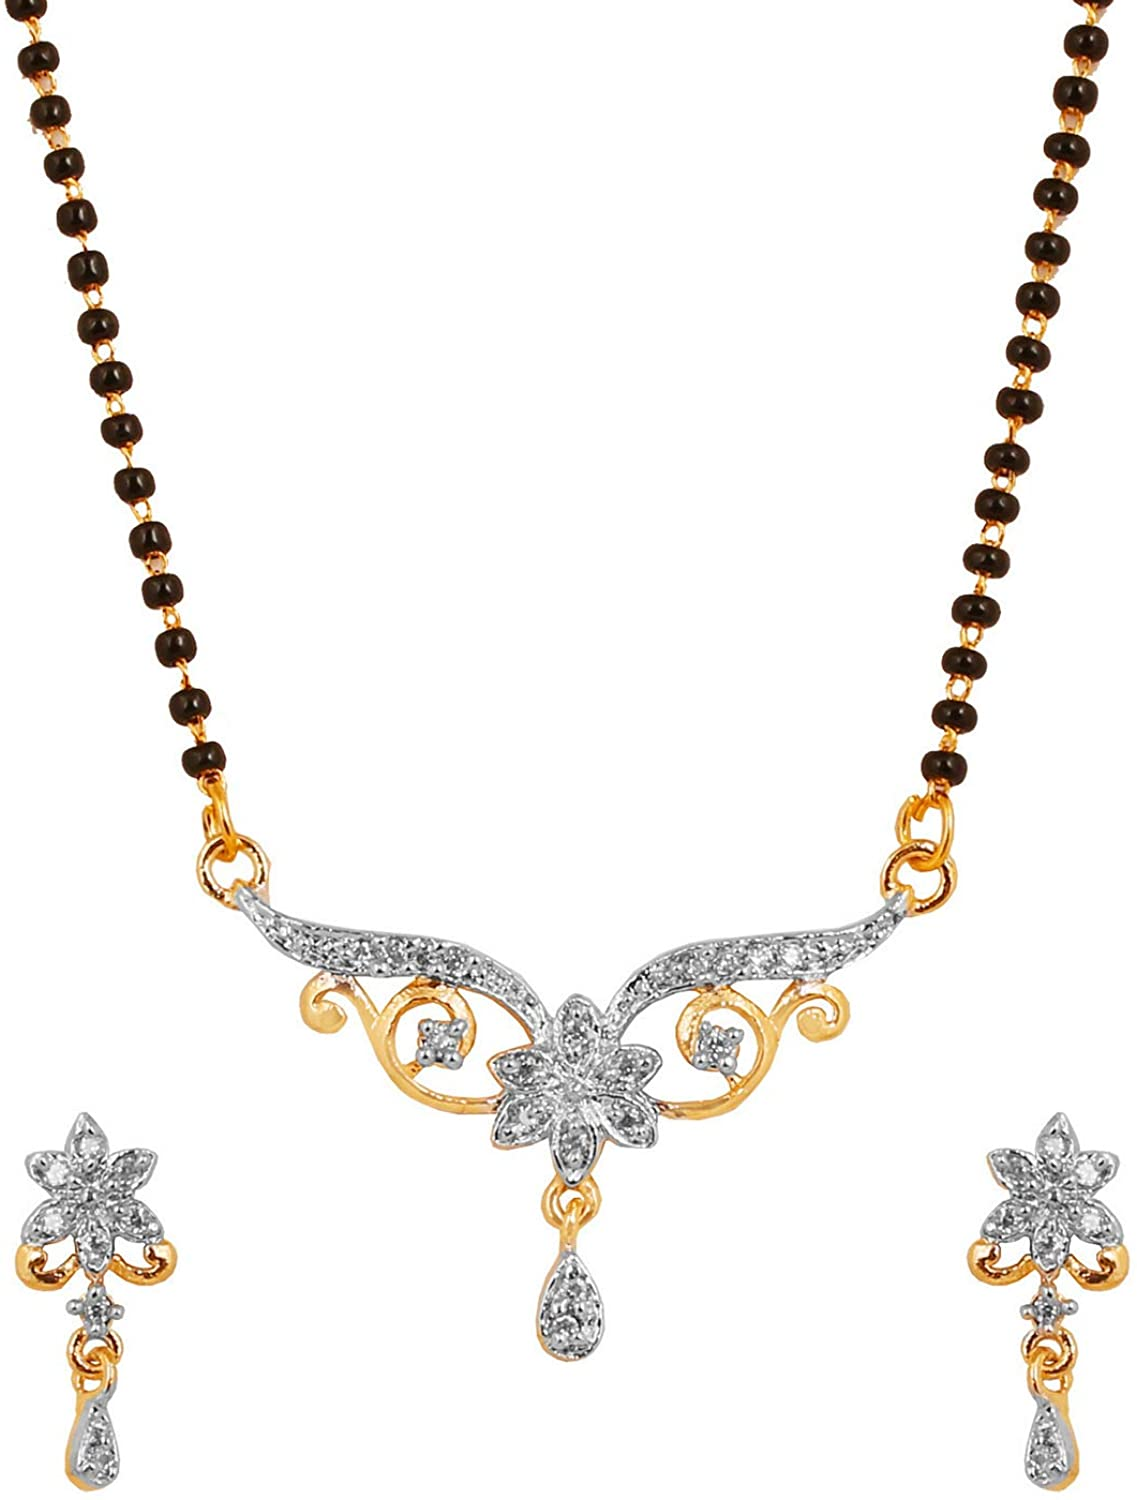 Touchstone New Indian Bollywood Graceful Ethnic Studded Diamond Look Cubic Zirconia CZs Symbolic Intertwined Black Beads Mangalsutra Pendant Set in Gold and Silver Tones for Women.